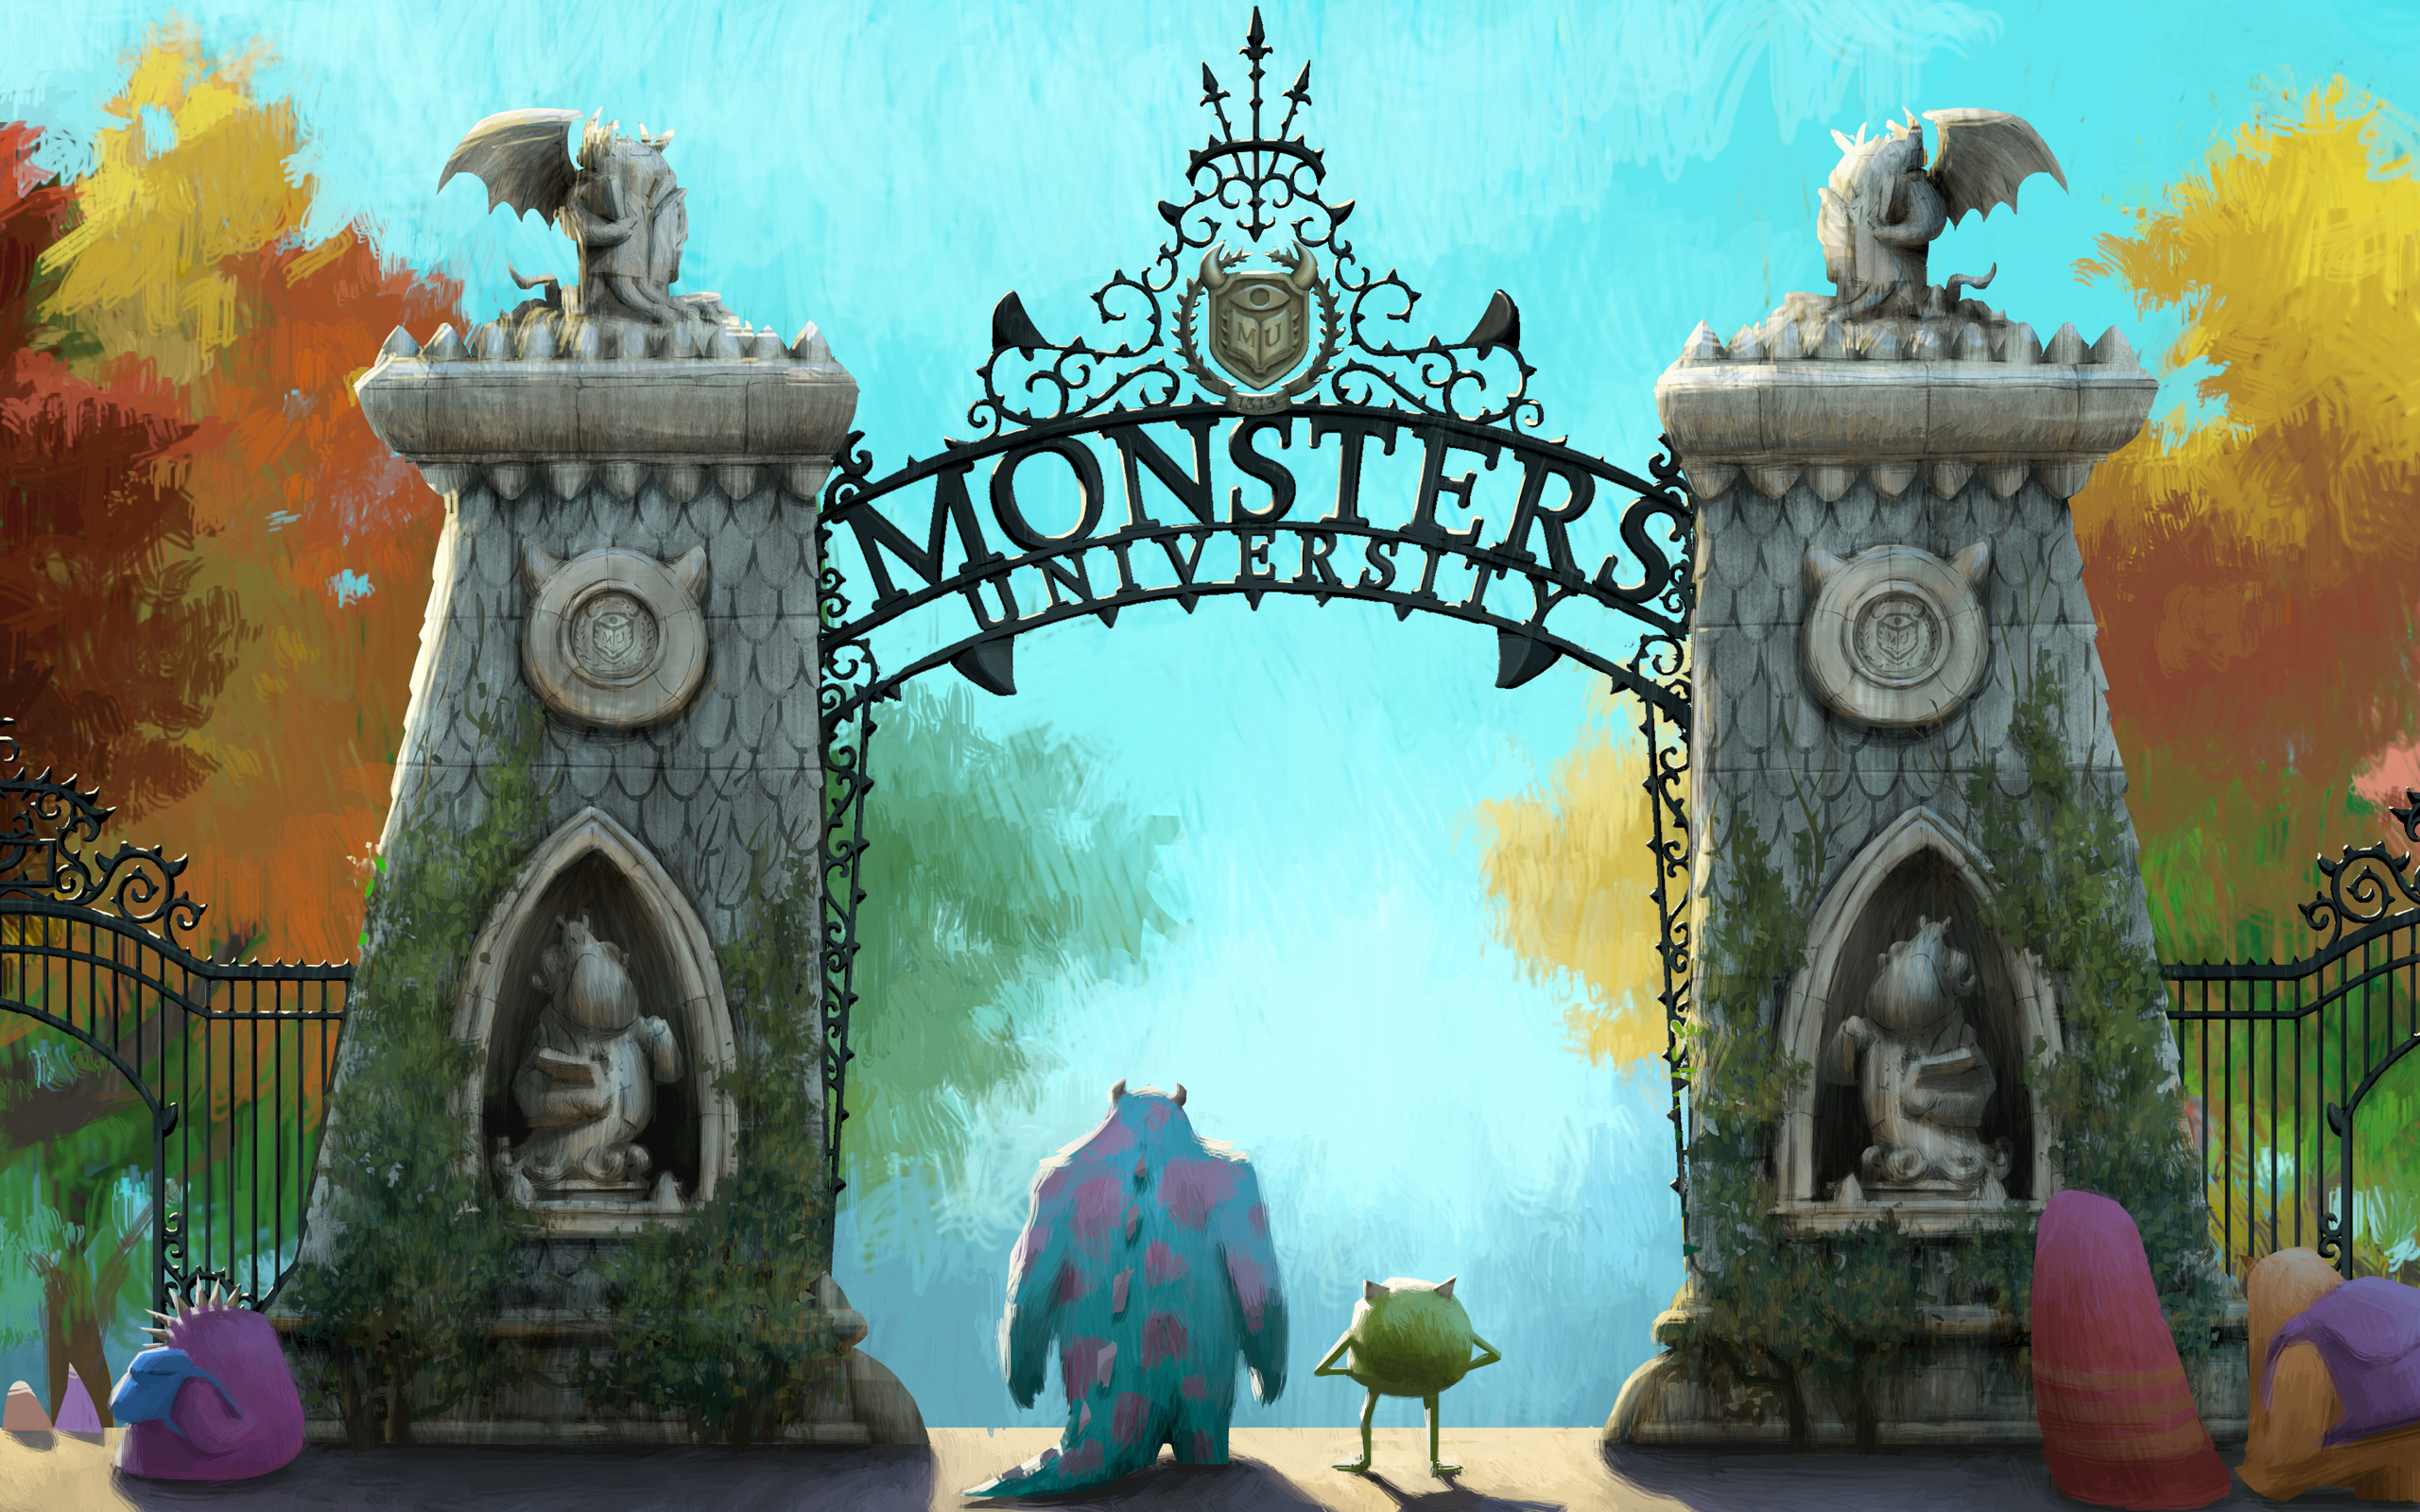 Monsters University Wallpapers HD Wallpapers 2560x1600